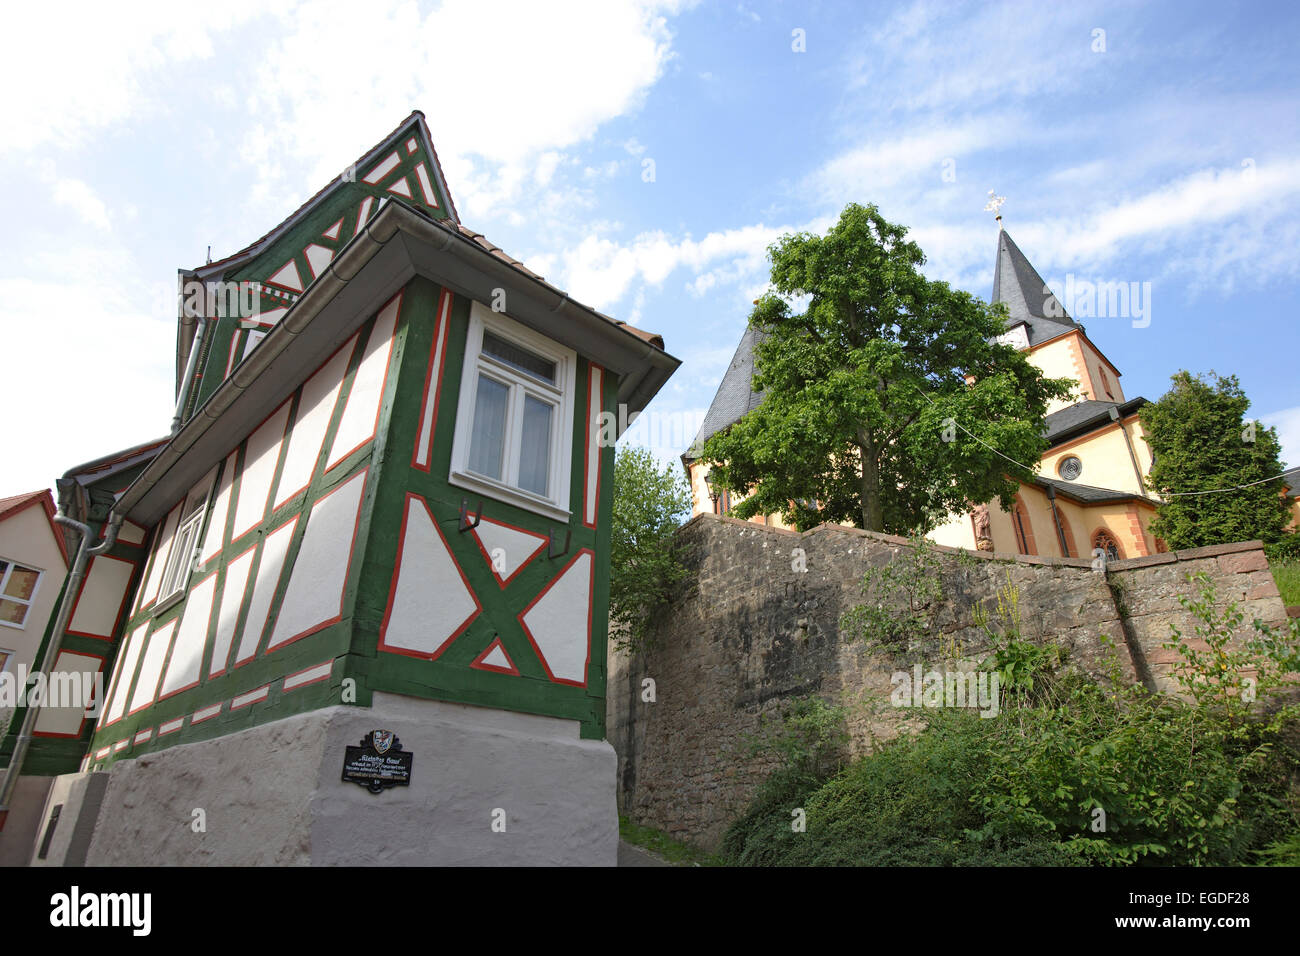 The smallest house and the church of St. Martin, Old town, Bad Orb, Spessart, Hesse, Germany - Stock Image